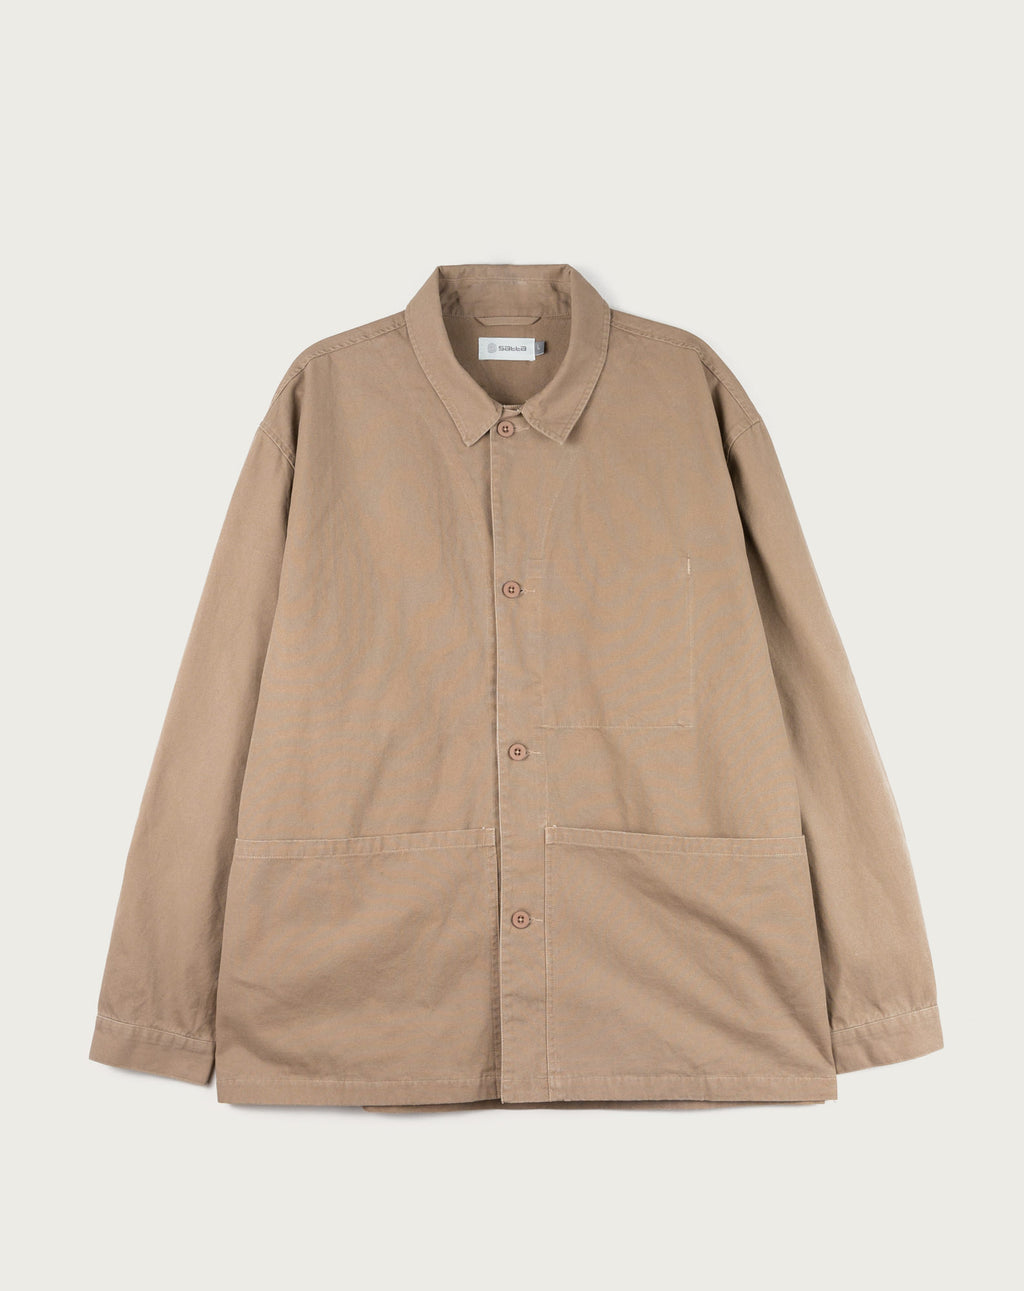 Satta Allotment Jacket - Tan | SATTA